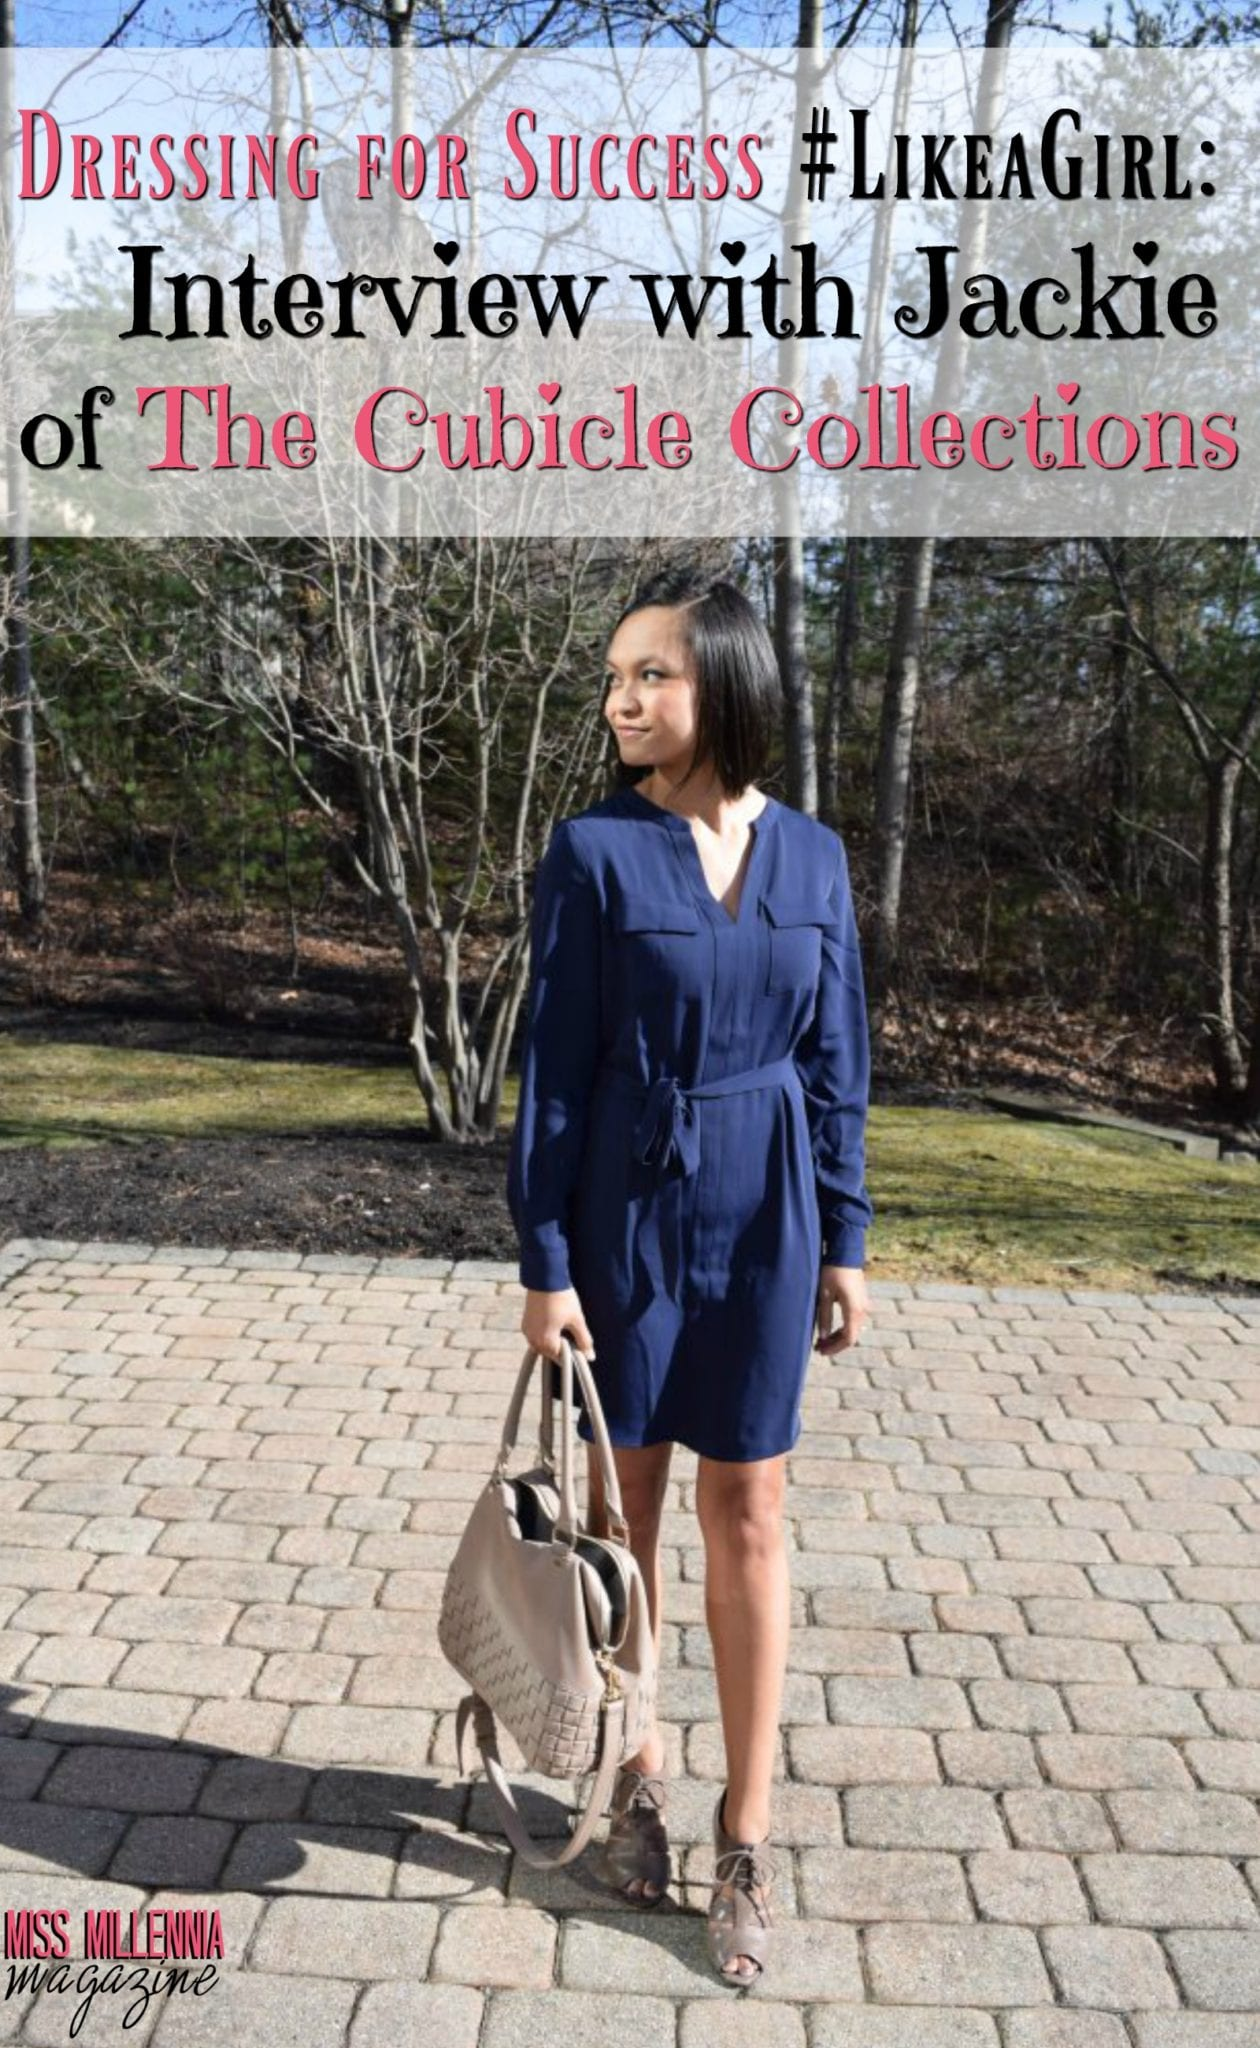 Dressing for Success #LikeaGirl: Interview with Jackie of The Cubicle Collections